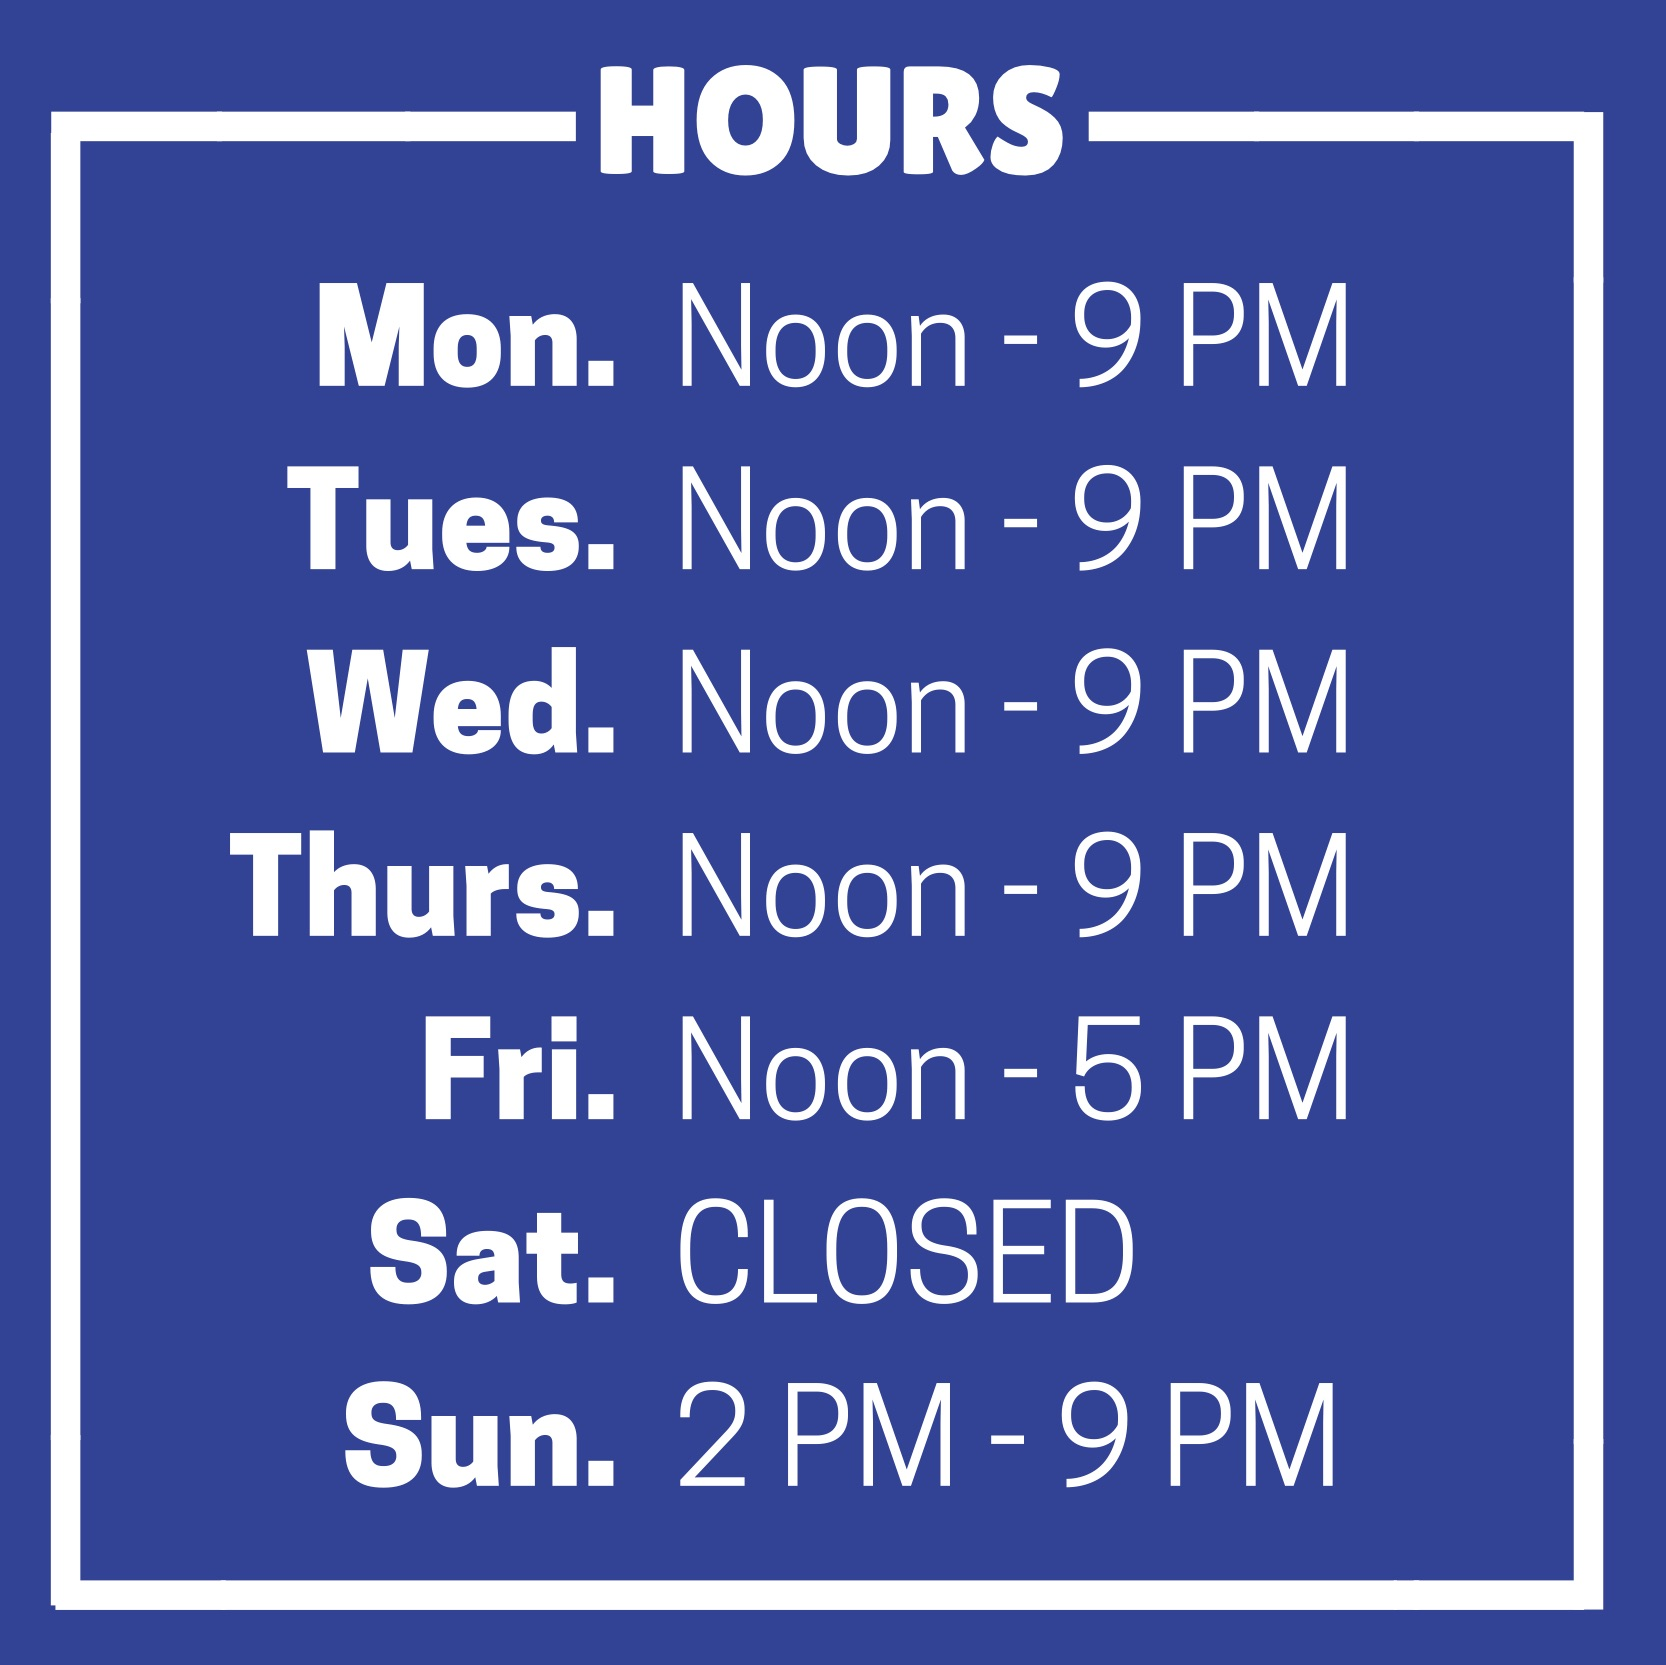 Hours of Operation. Monday, noon to 9 PM. Tuesday, noon to 9 PM. Wednesday, noon to 9 PM. Thursday, noon to 9 PM. Friday, noon to 5 PM. Saturday, closed. Sunday, 2 PM to 9 PM.